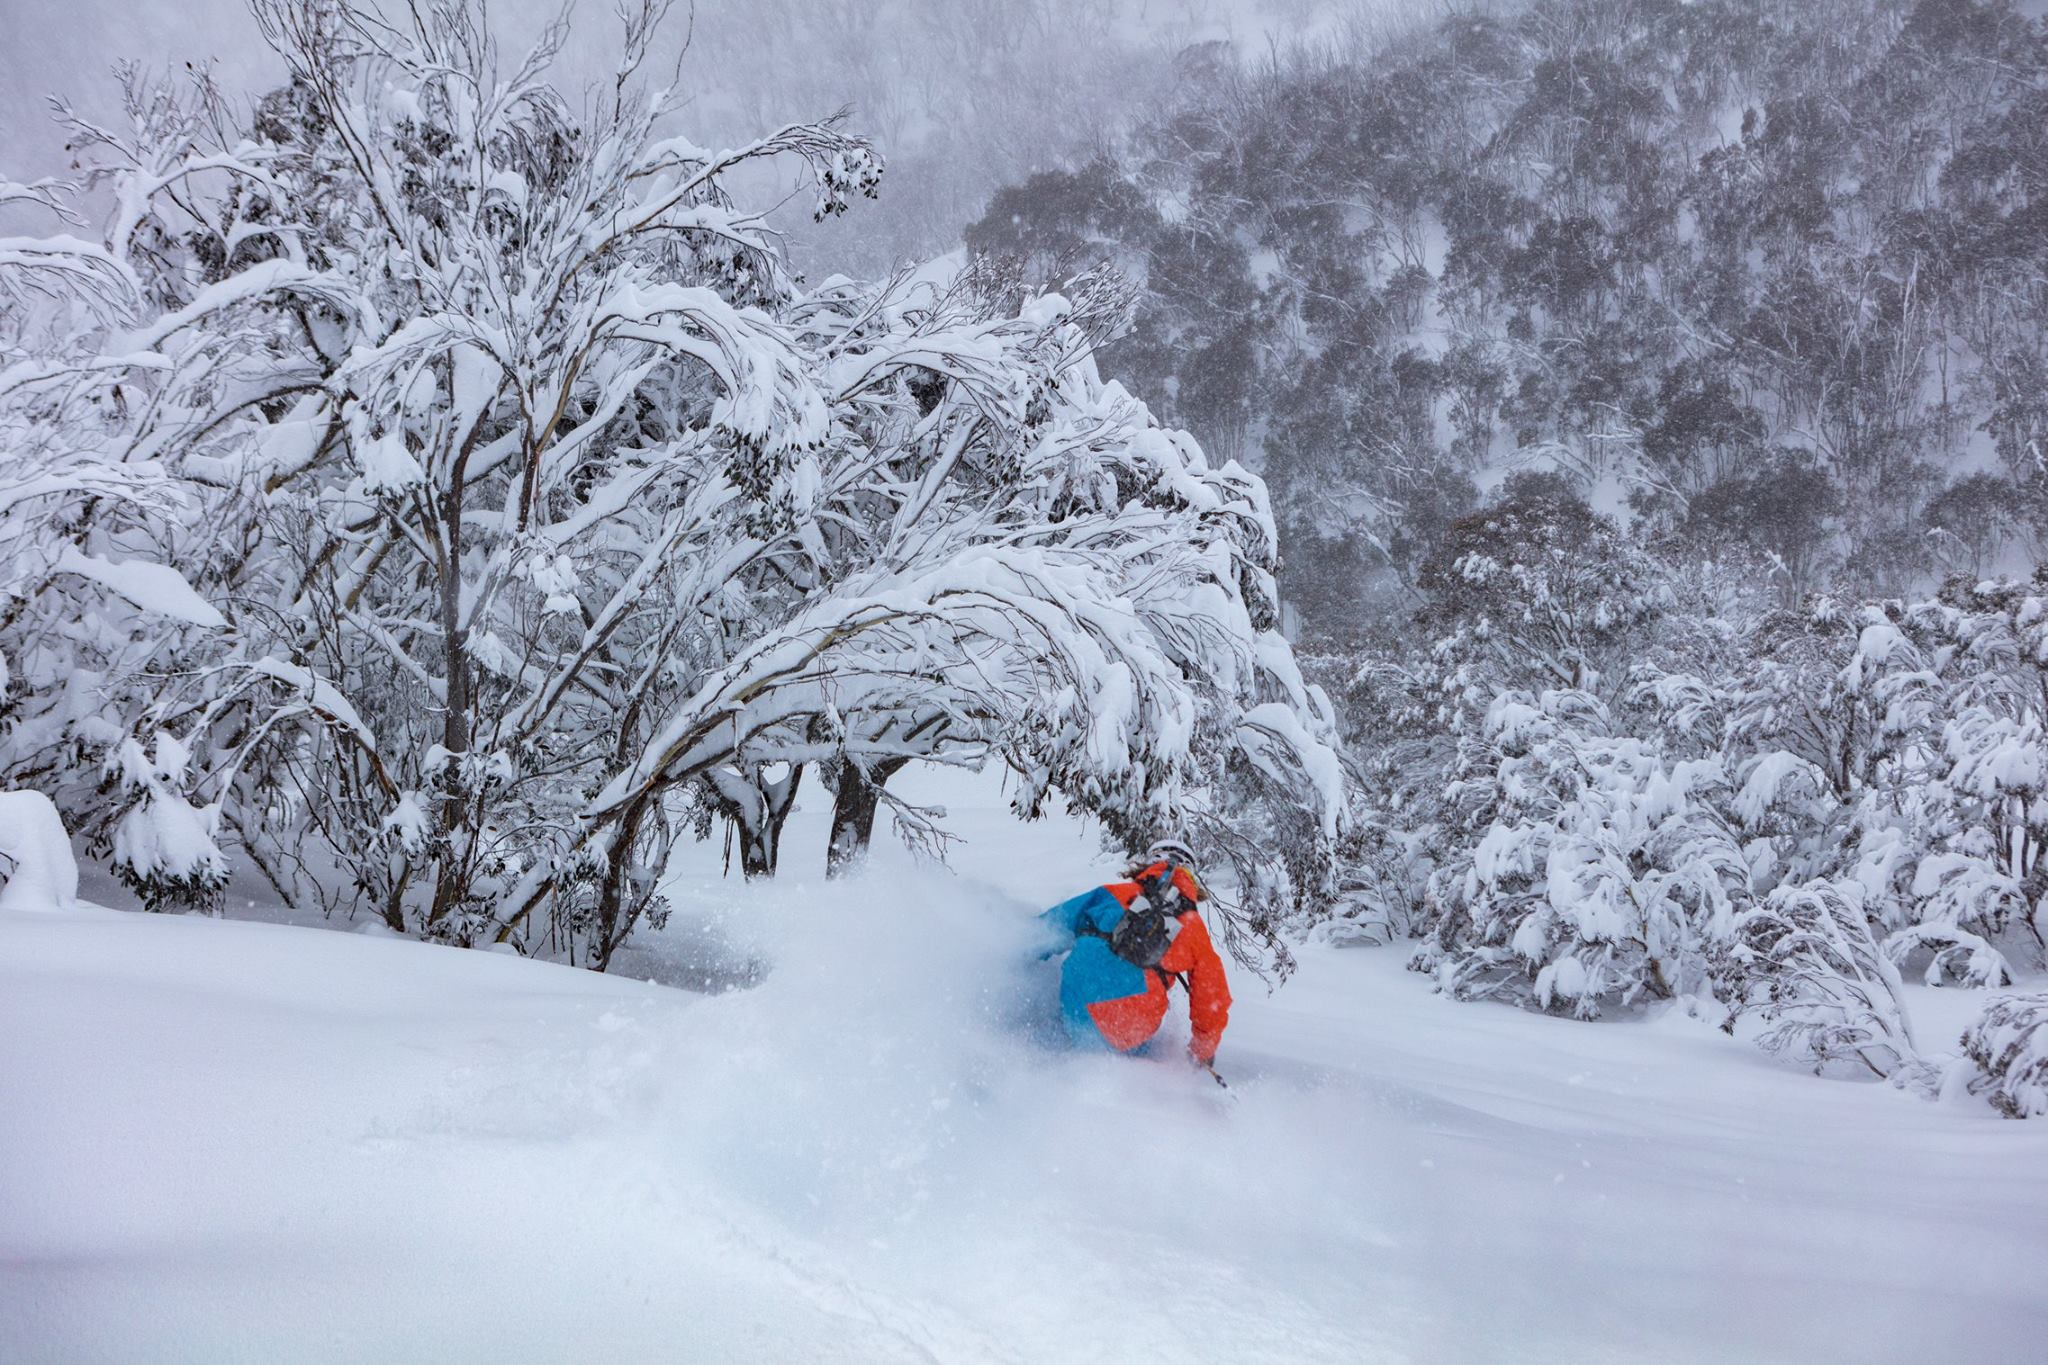 After 50cm in less than 24hrs, skiers take to the slopes at Hotham. Image via Hotham Alpine Resort